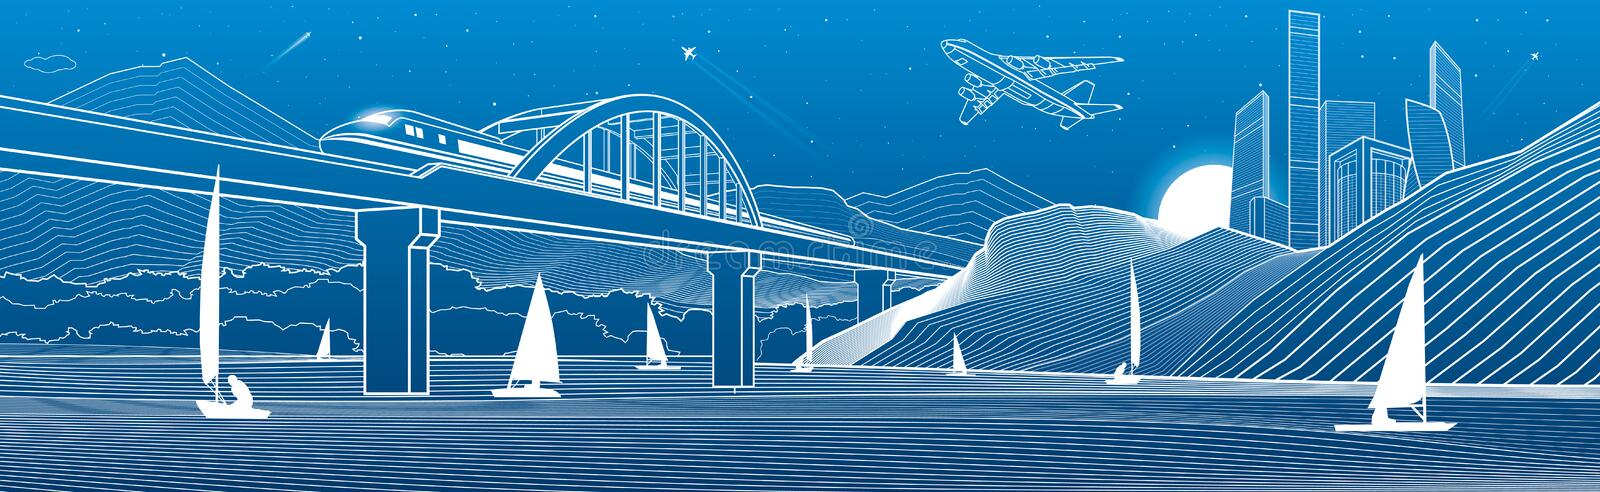 Outline illustration. View from river to night city in mountains. Yachts on water. Train travels along railway bridge. White lines. On blue background. Vector royalty free illustration